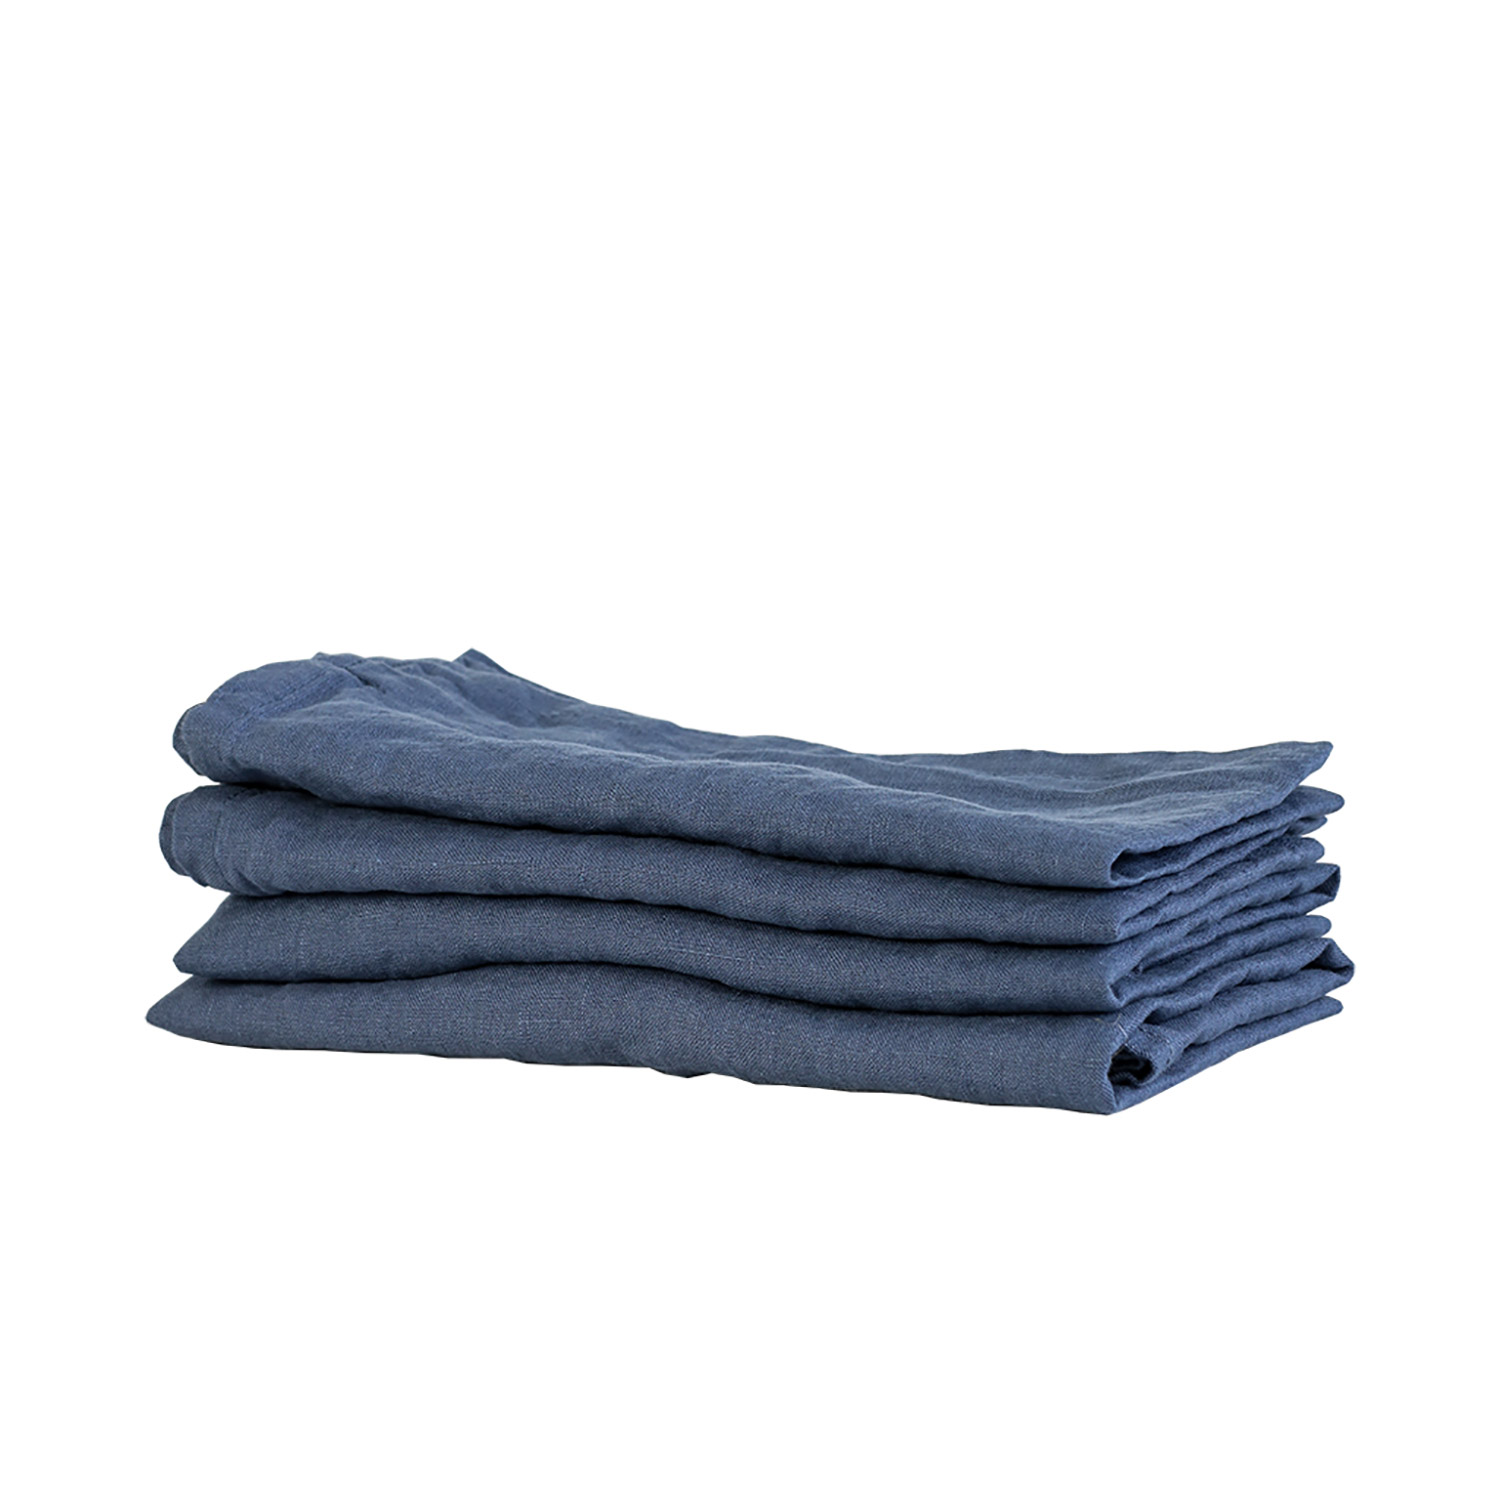 Washed Linen kökshandduk, navy blue